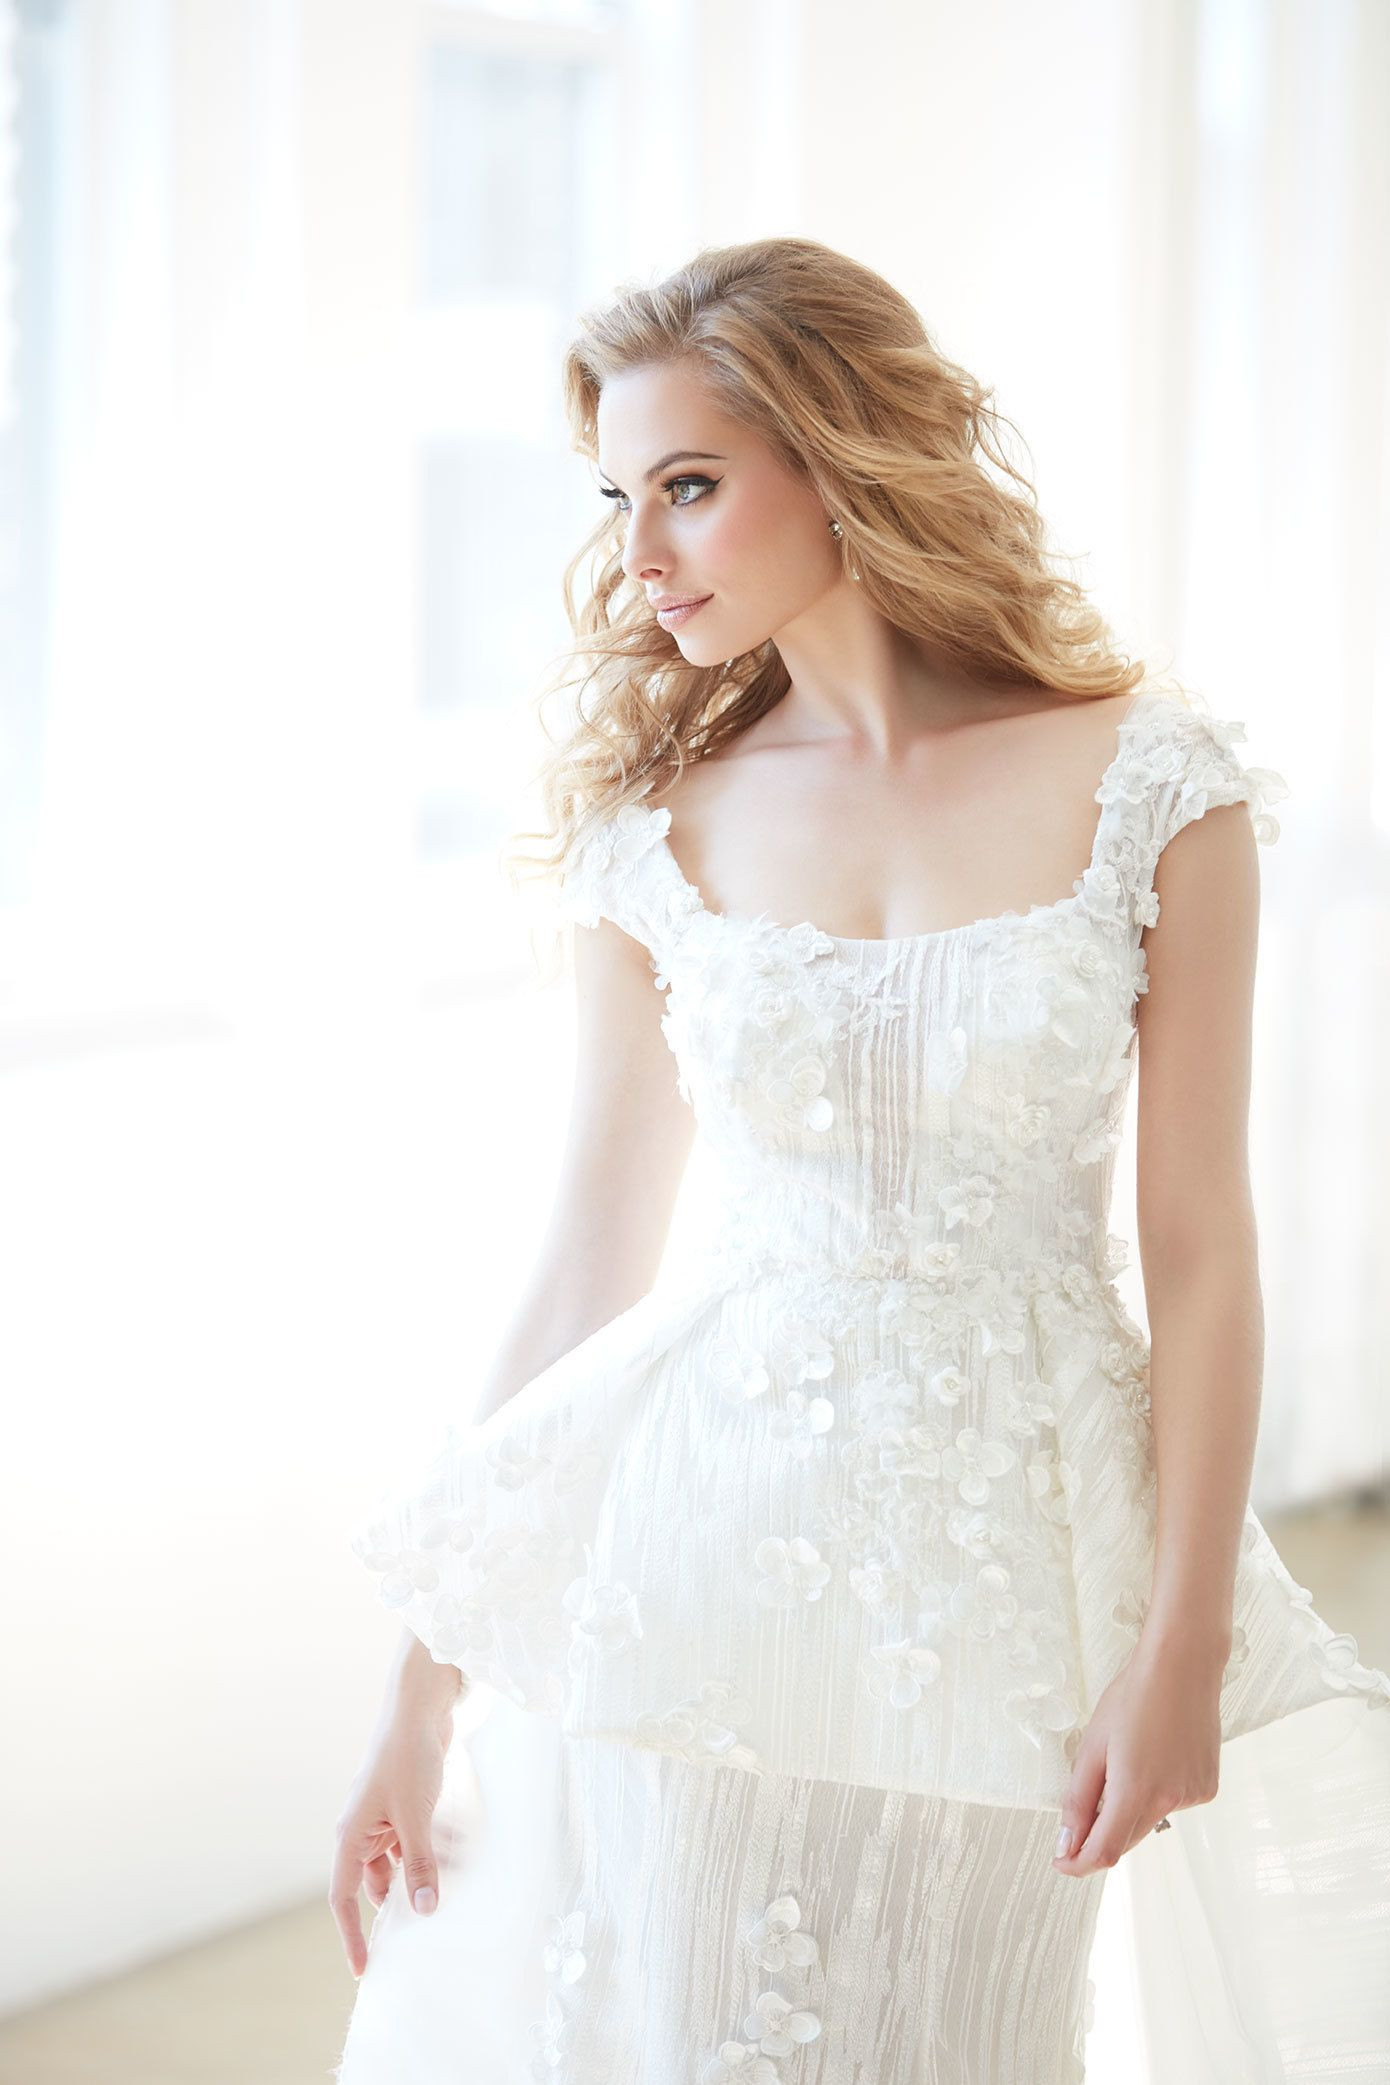 Wedding Dress 101 Choosing The Right Gown For Your Venue